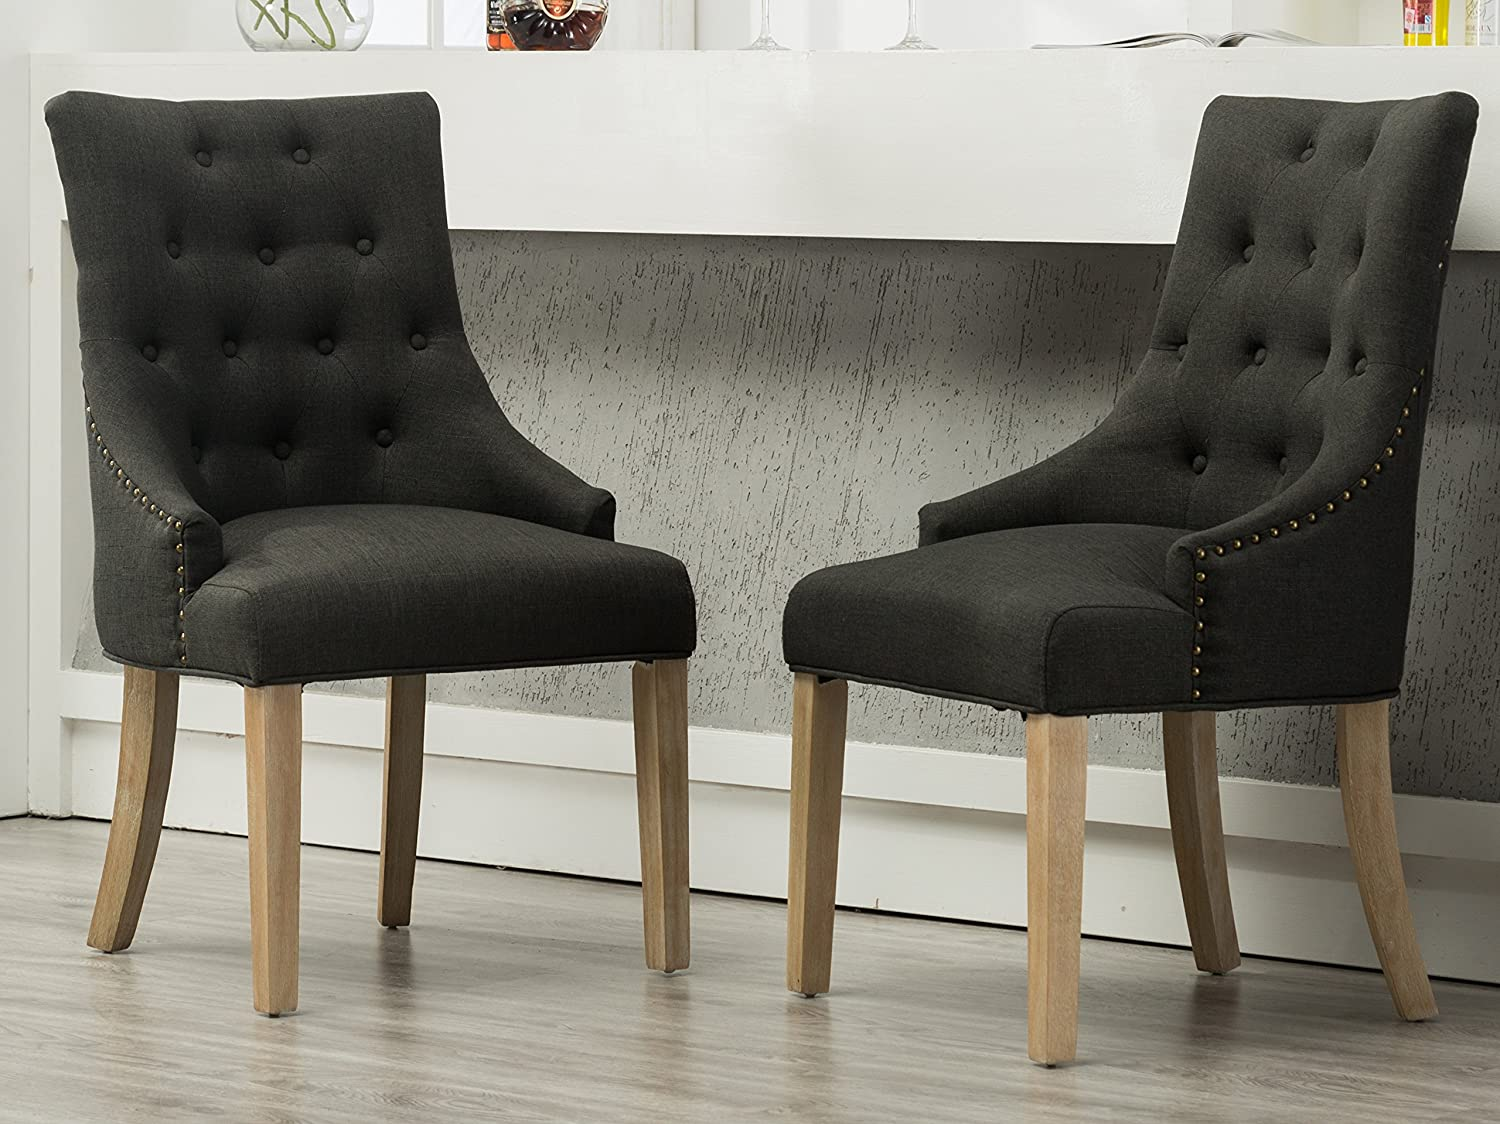 Amazon com roundhill furniture c169cc button tufted solid wood wingback hostess chairs with nail heads set of 2 charcoal chairs